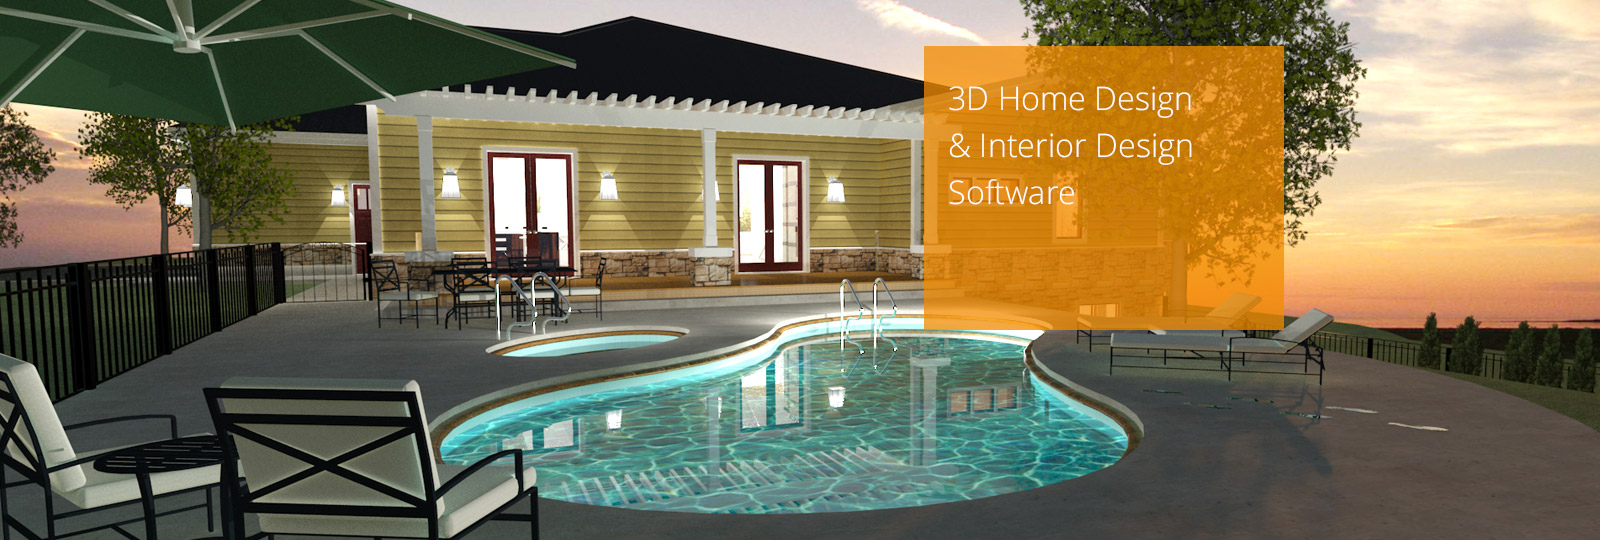 Home Designer Software home designer software video tour Home Design ...